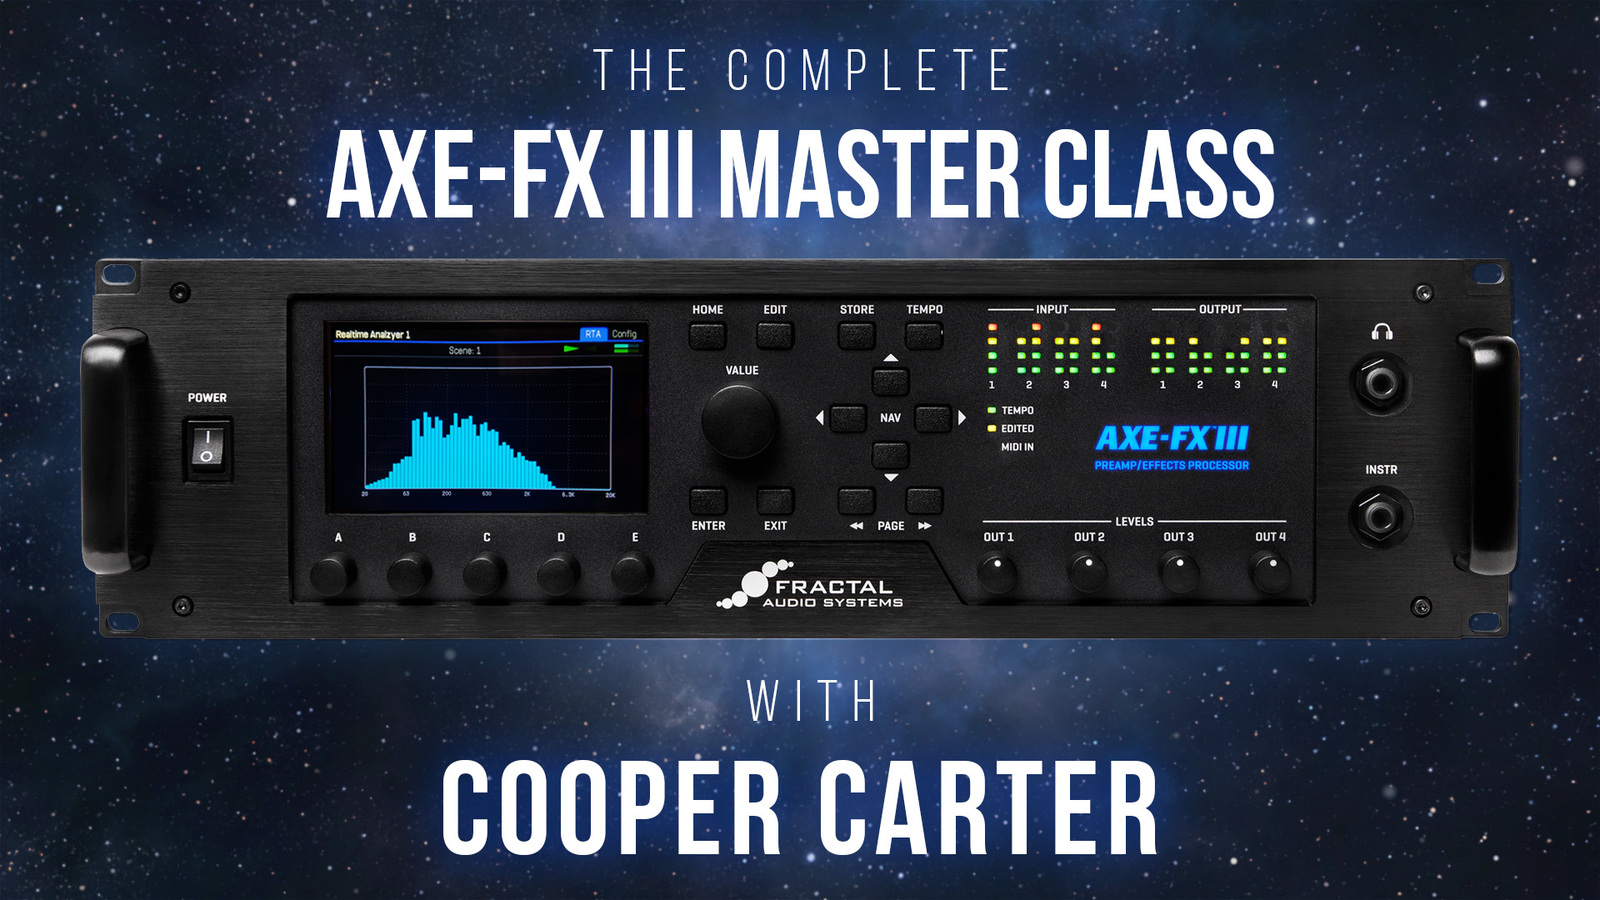 The Complete Axe-Fx III Master Class with Cooper Carter